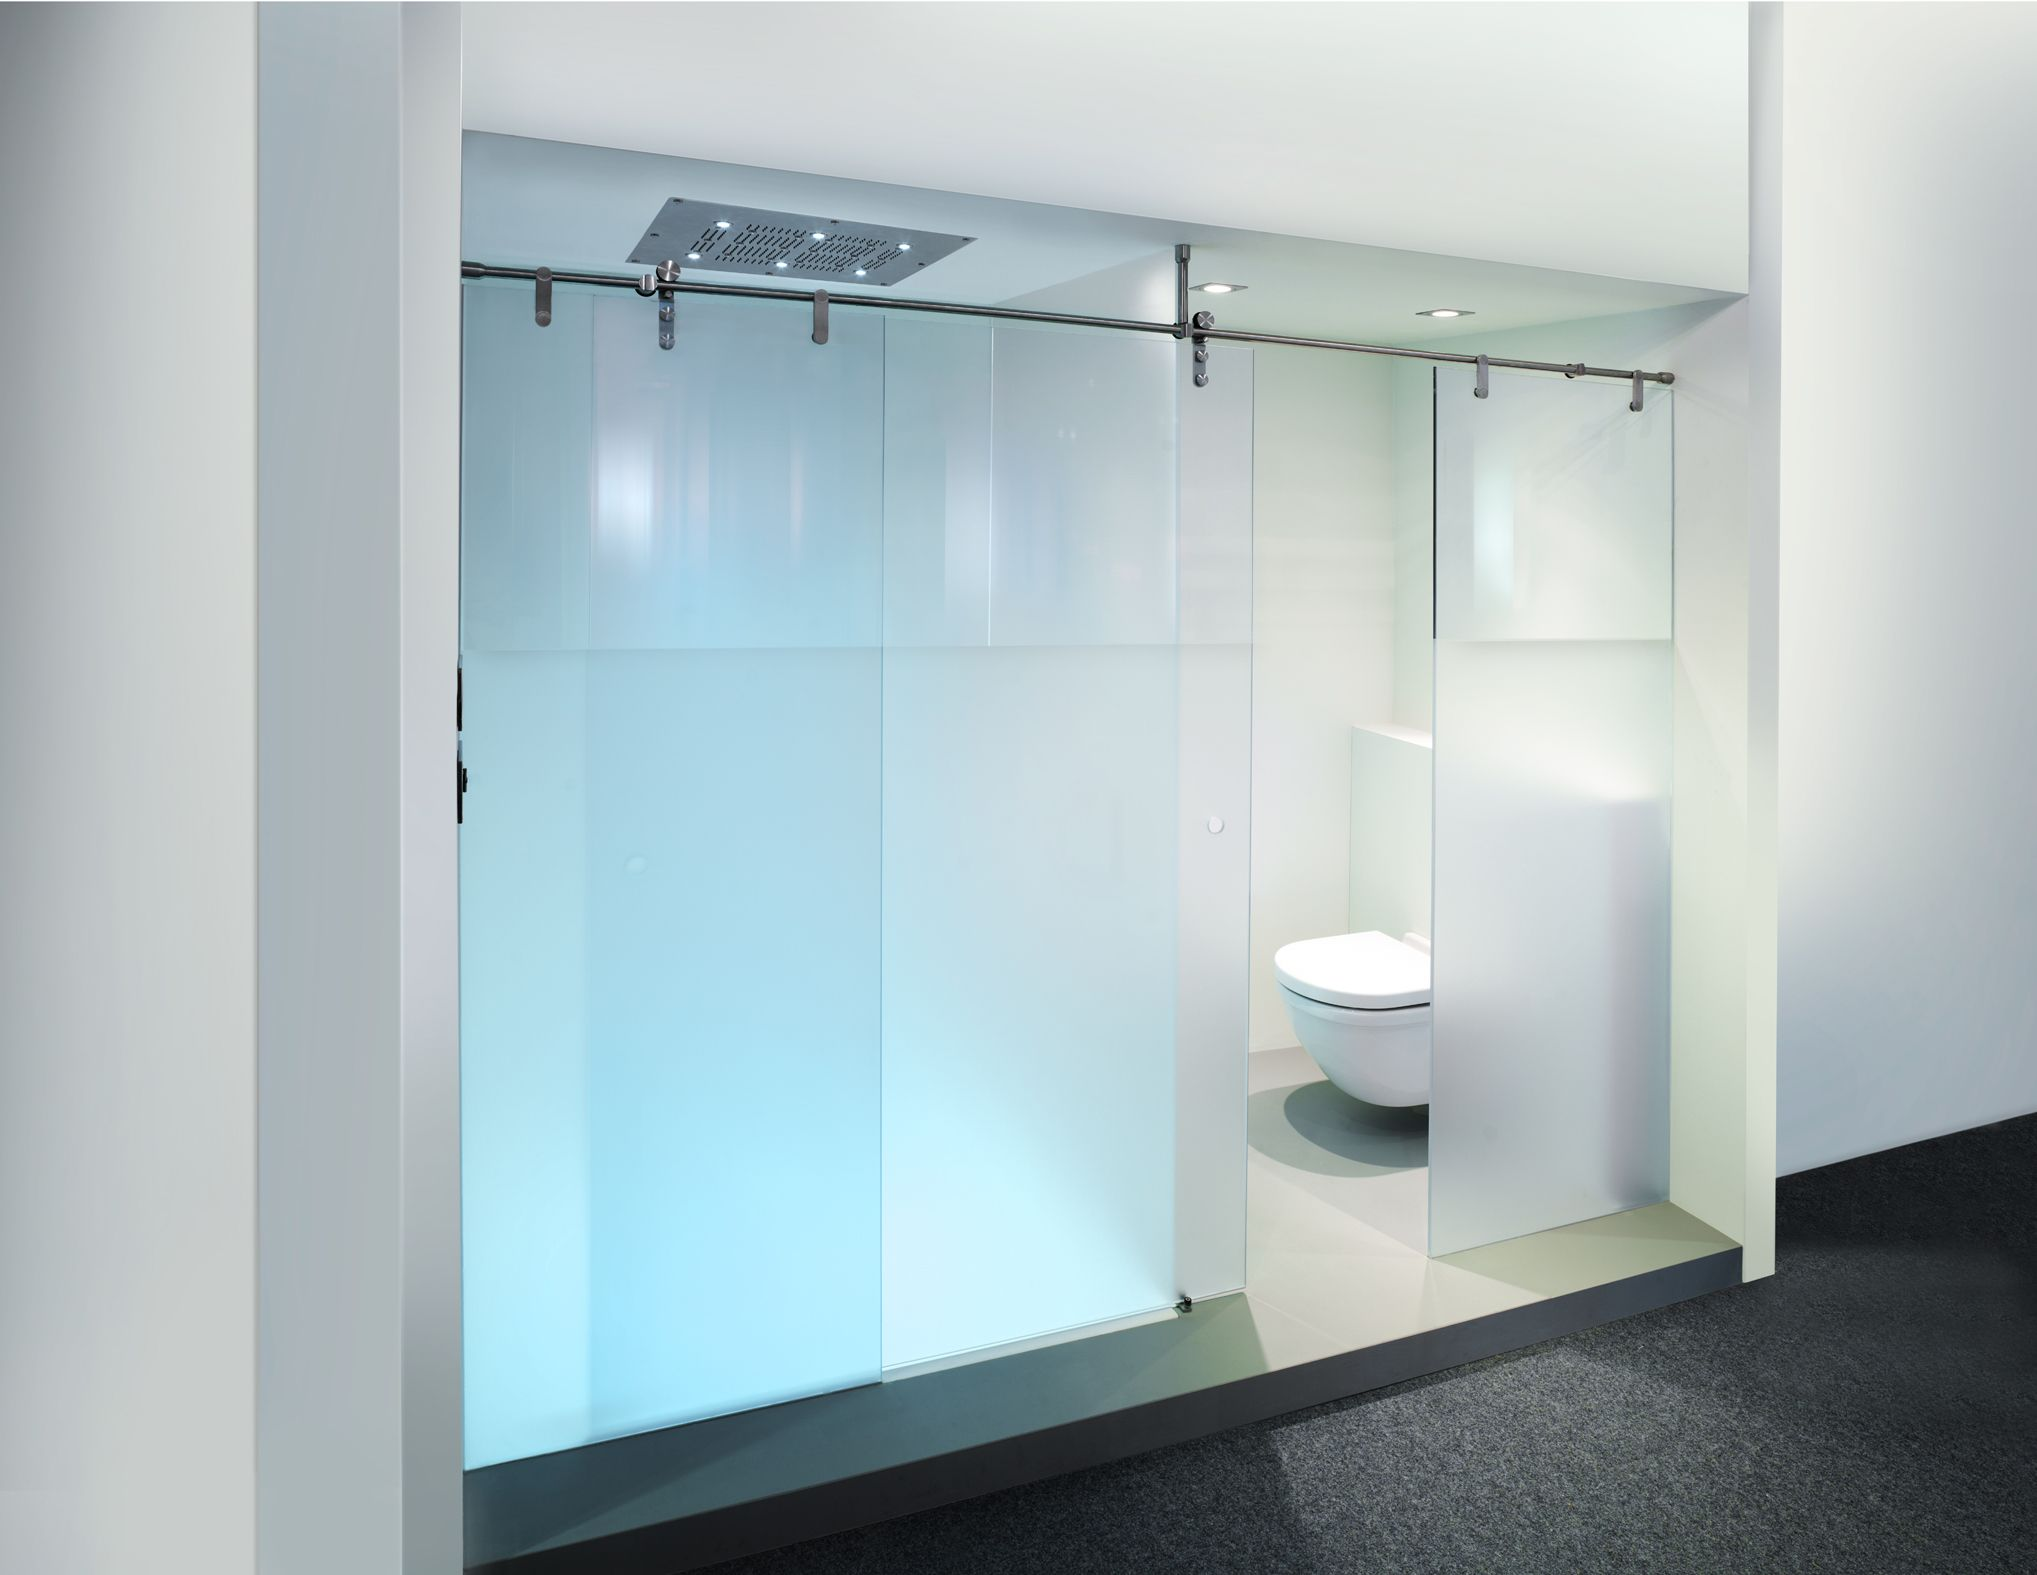 BD20 shower/toilet combination | Balance Bathroom | Bathrooms ...